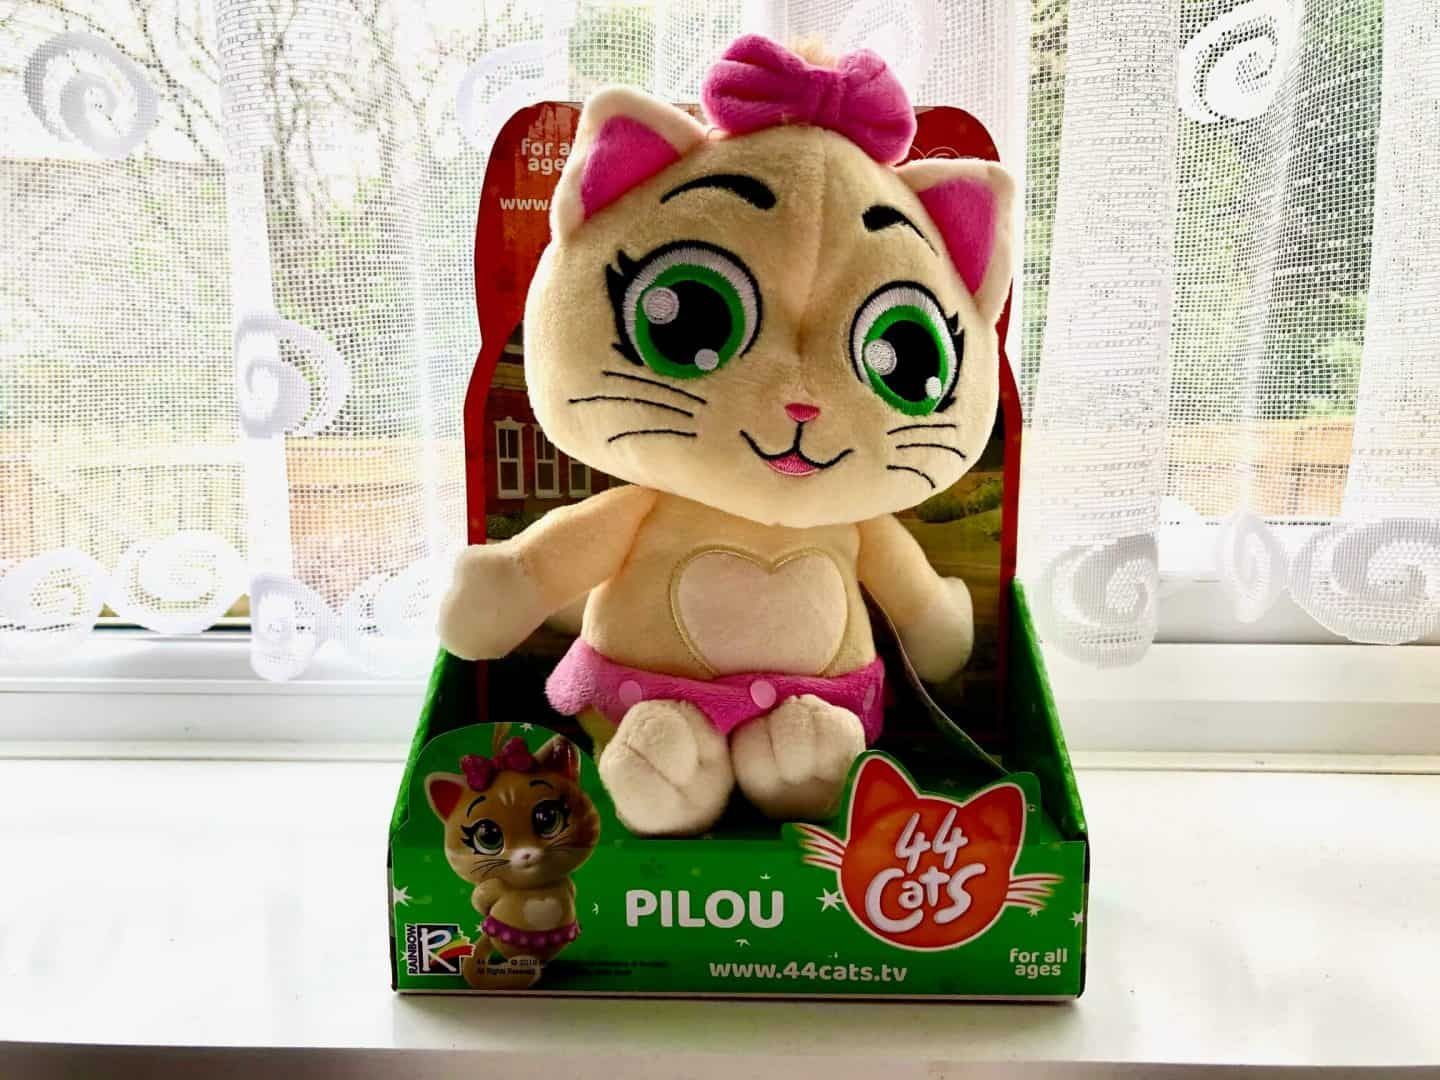 44 Cats Musical Plush Toy and Their New Range of Cattastic